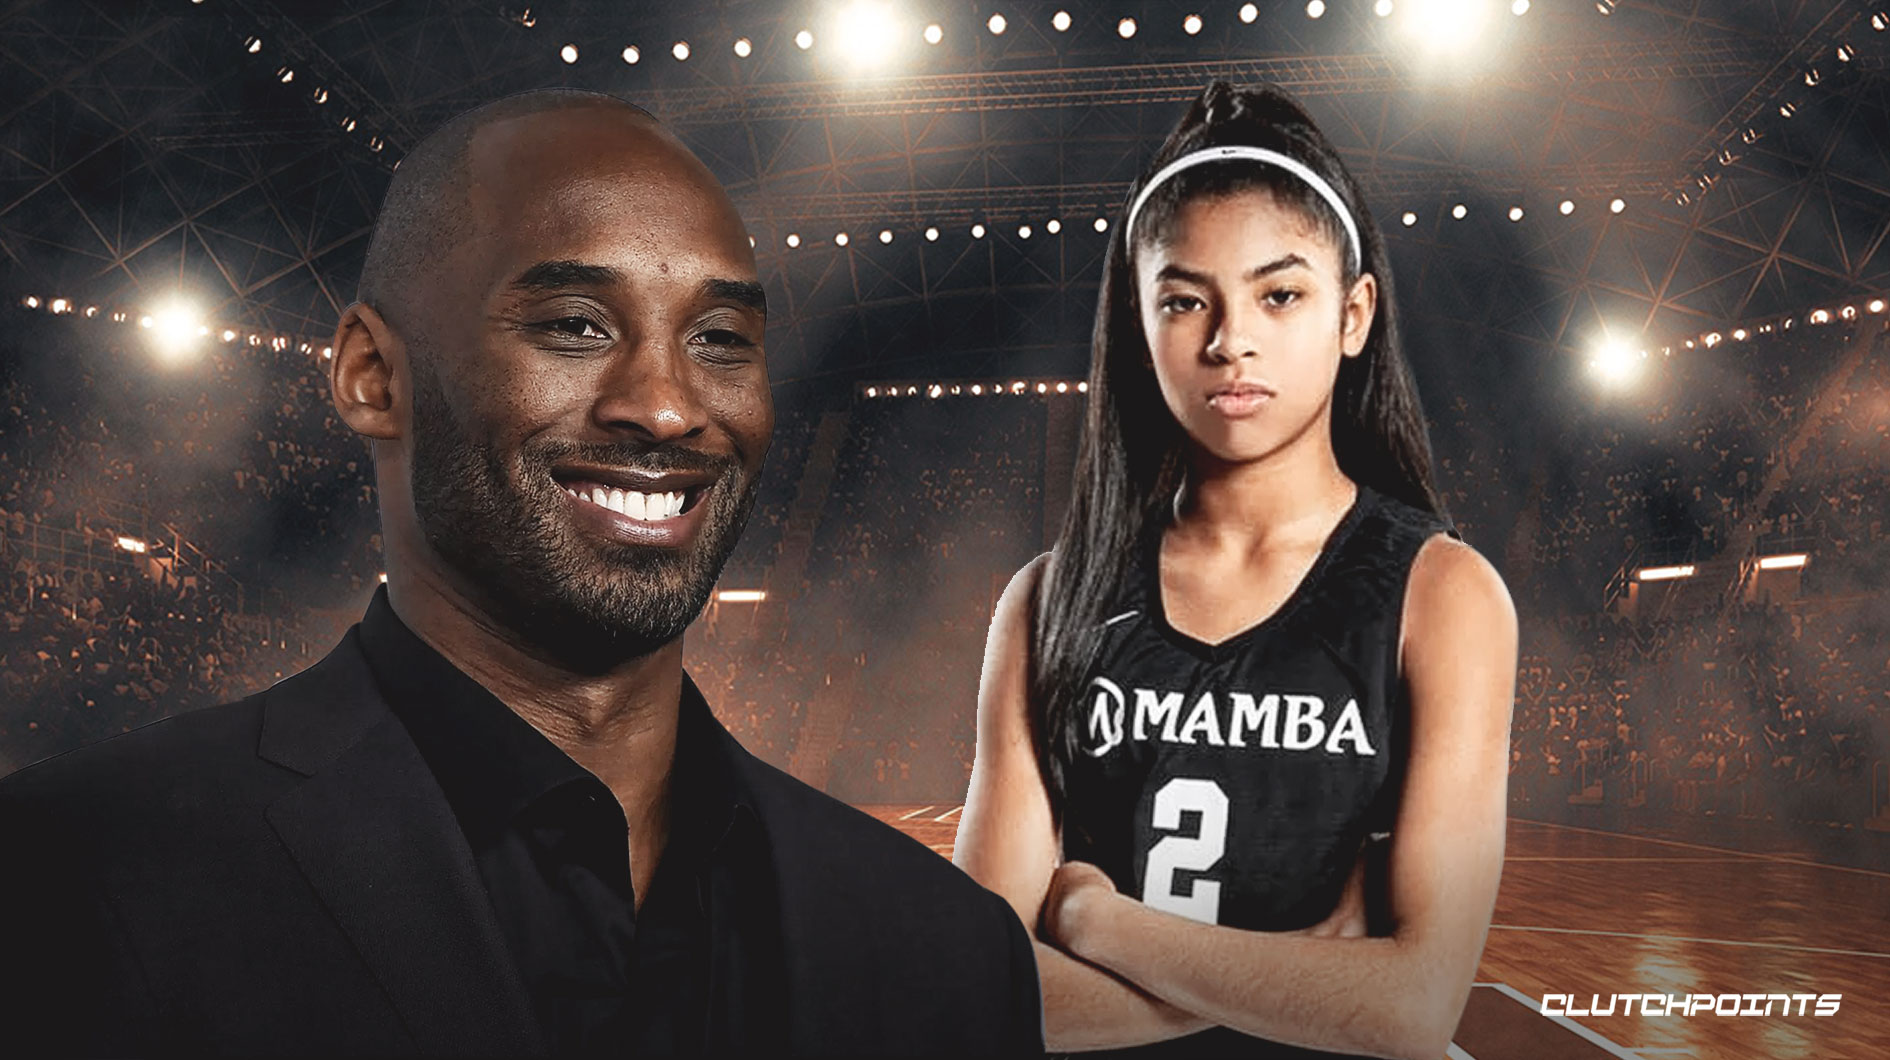 Kobe-Bryant_s-daughter-Gianna-sinks-a-stepback-3-pointer-in-weekend-AAU-game